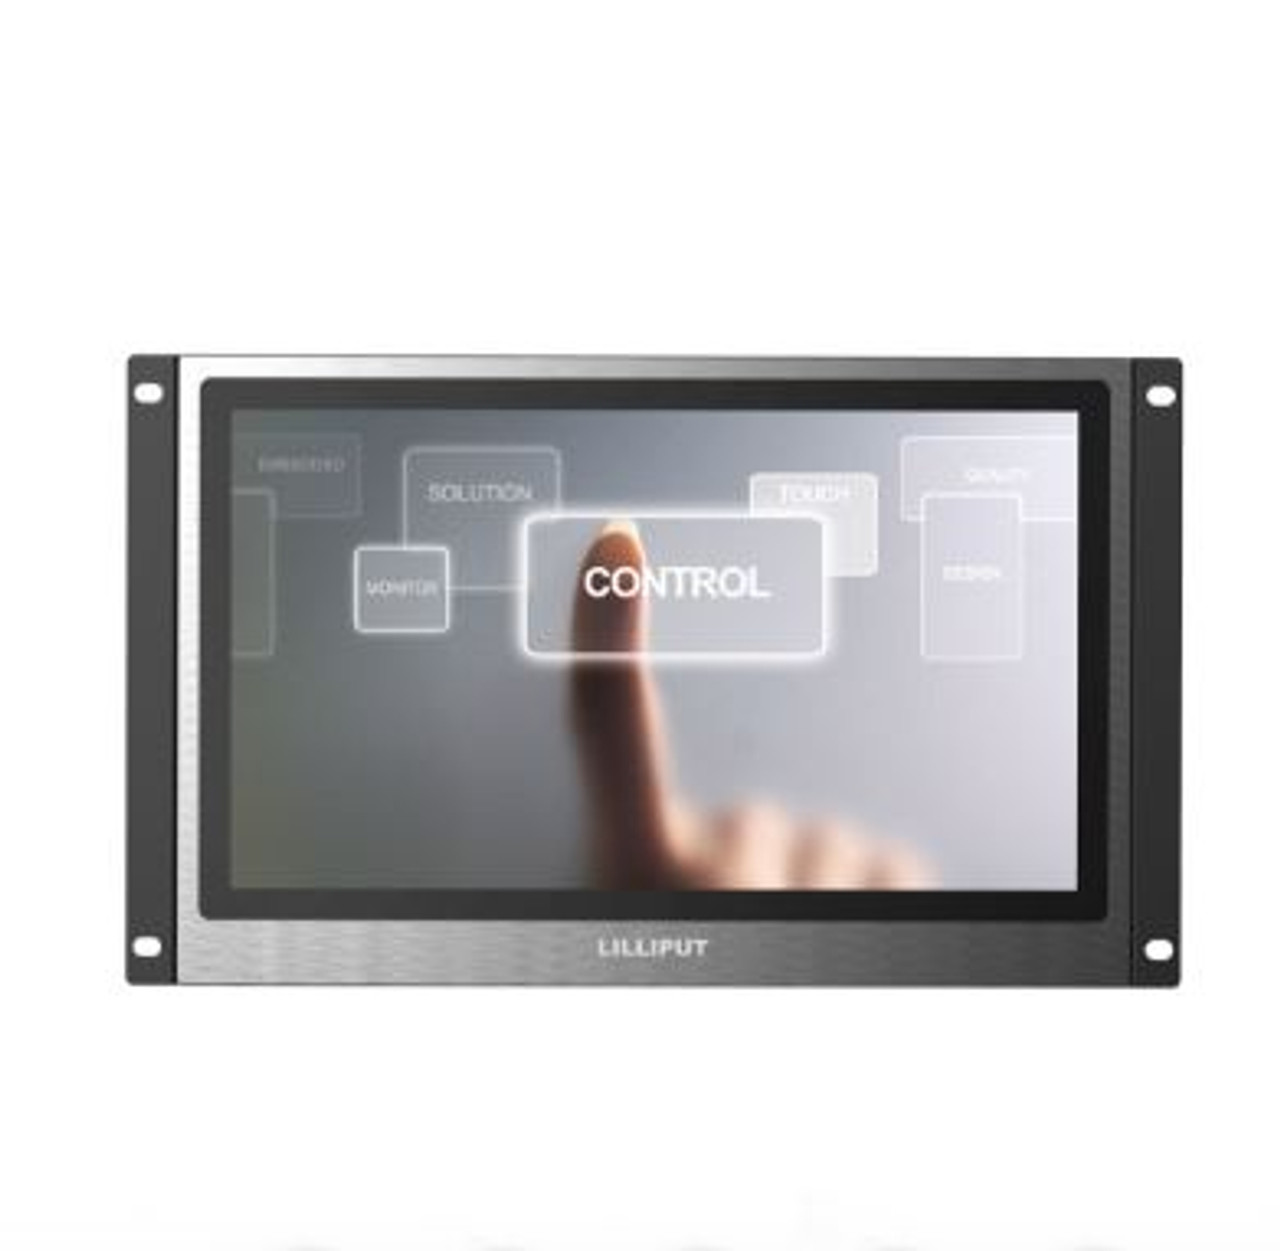 "TK1330-NP/C/T  (13.3"" Full HD HDMI monitor with capacitive touch function)"